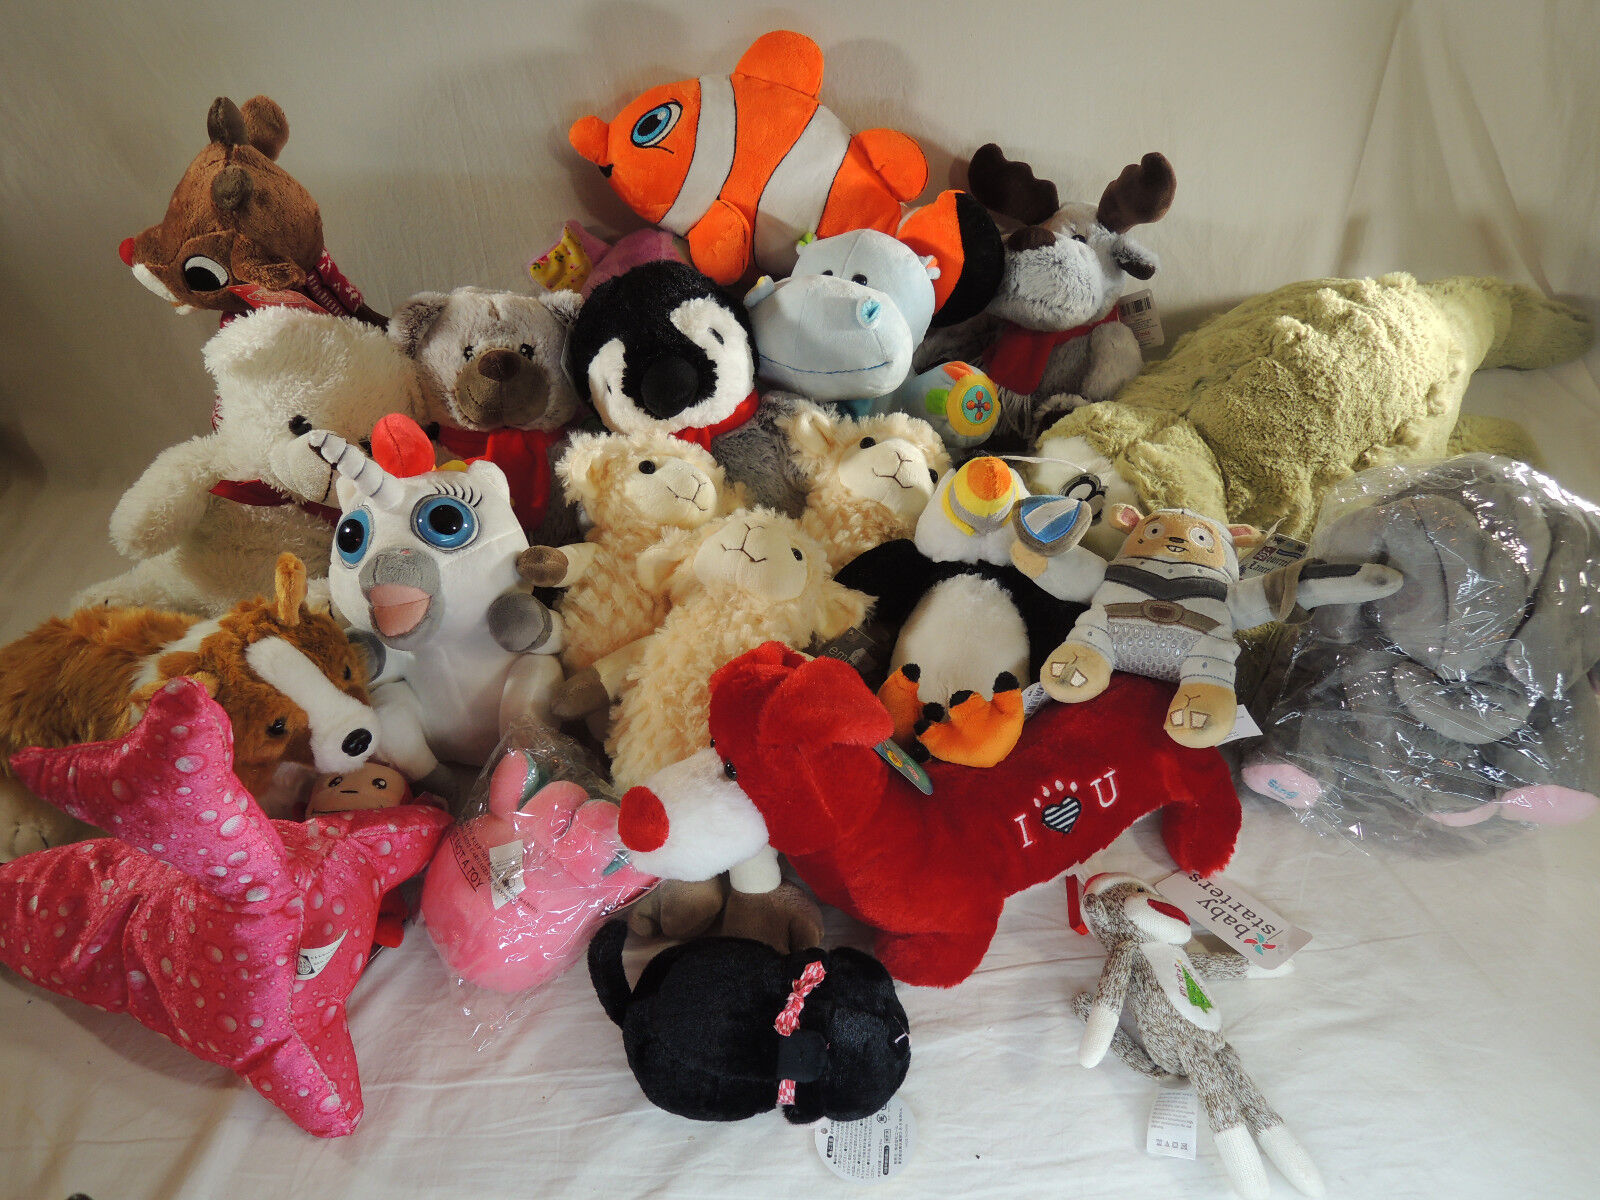 Huge Lot of 23 Assorted Stuffed Animal Toys S M L Rudolph Gator Dog Elephant